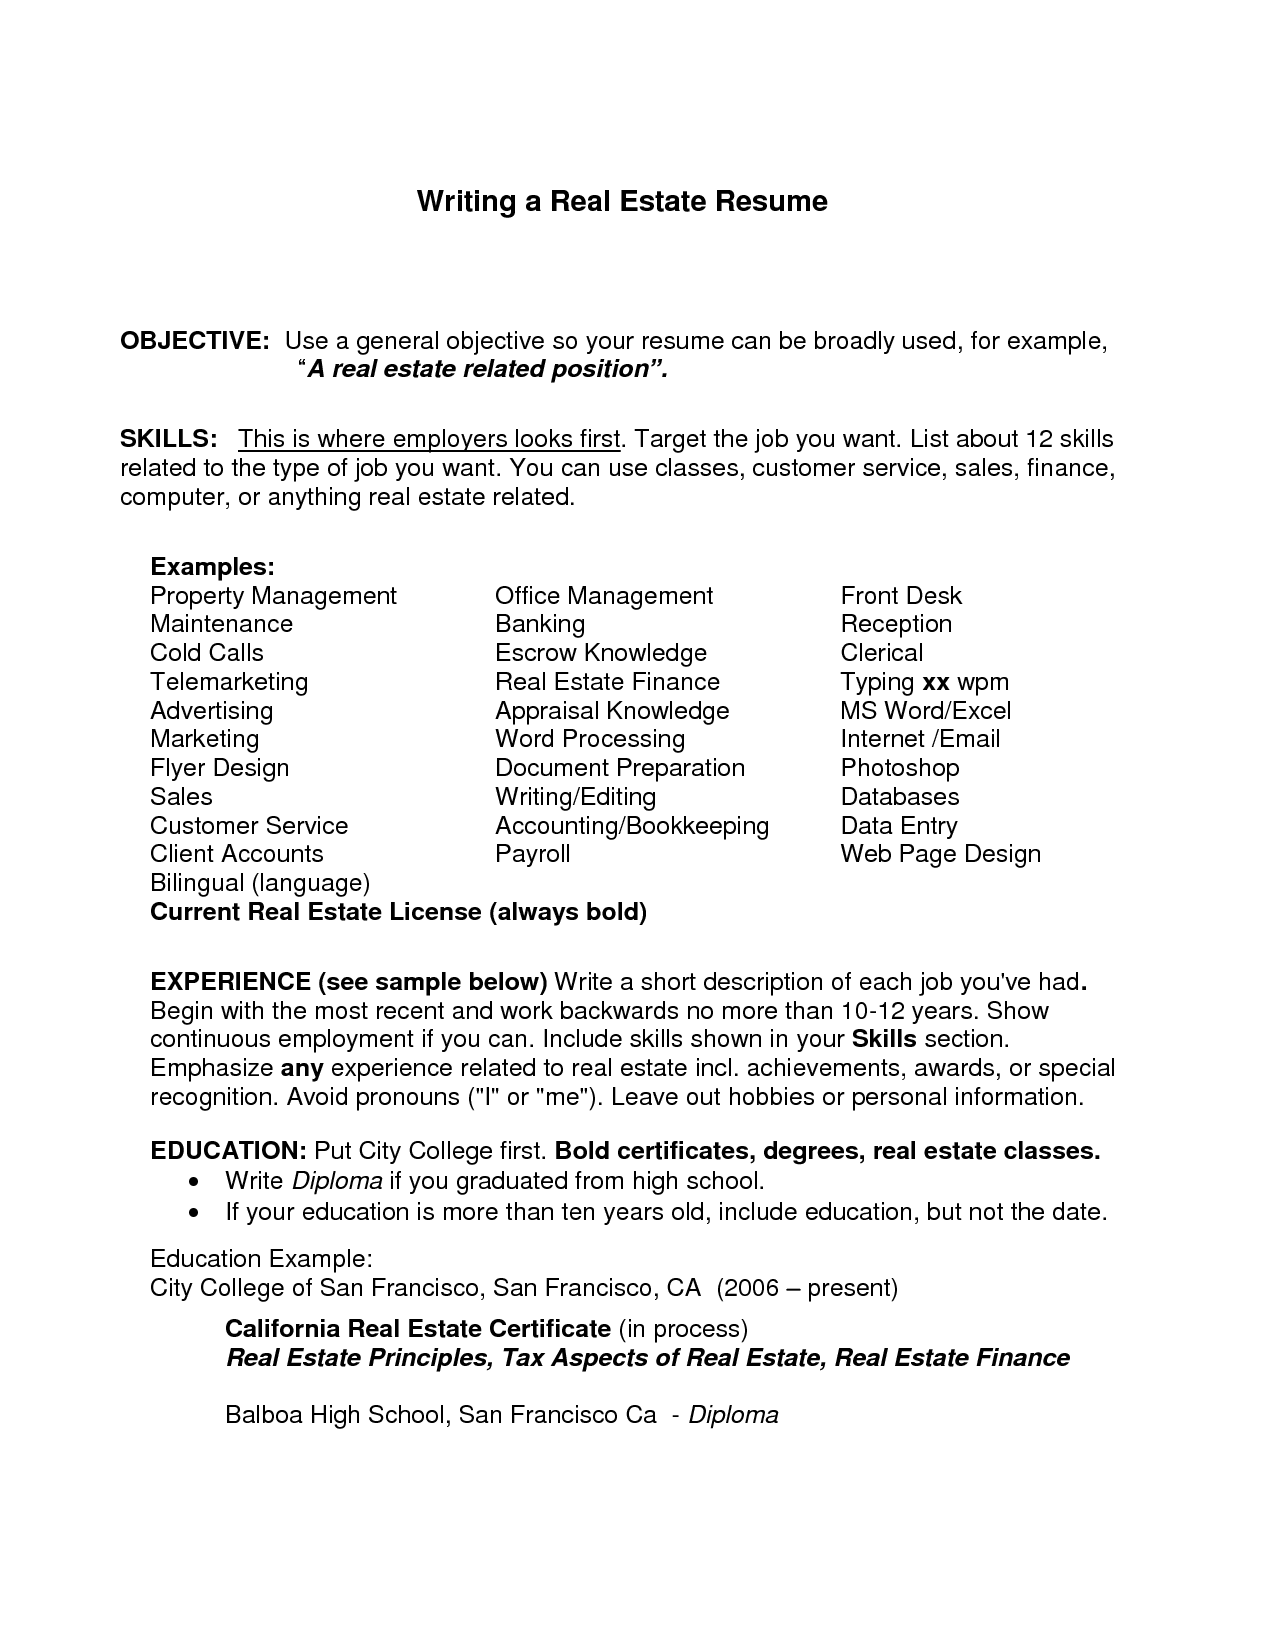 Writing A Resume Objective Sample   Http://www.resumecareer.info/